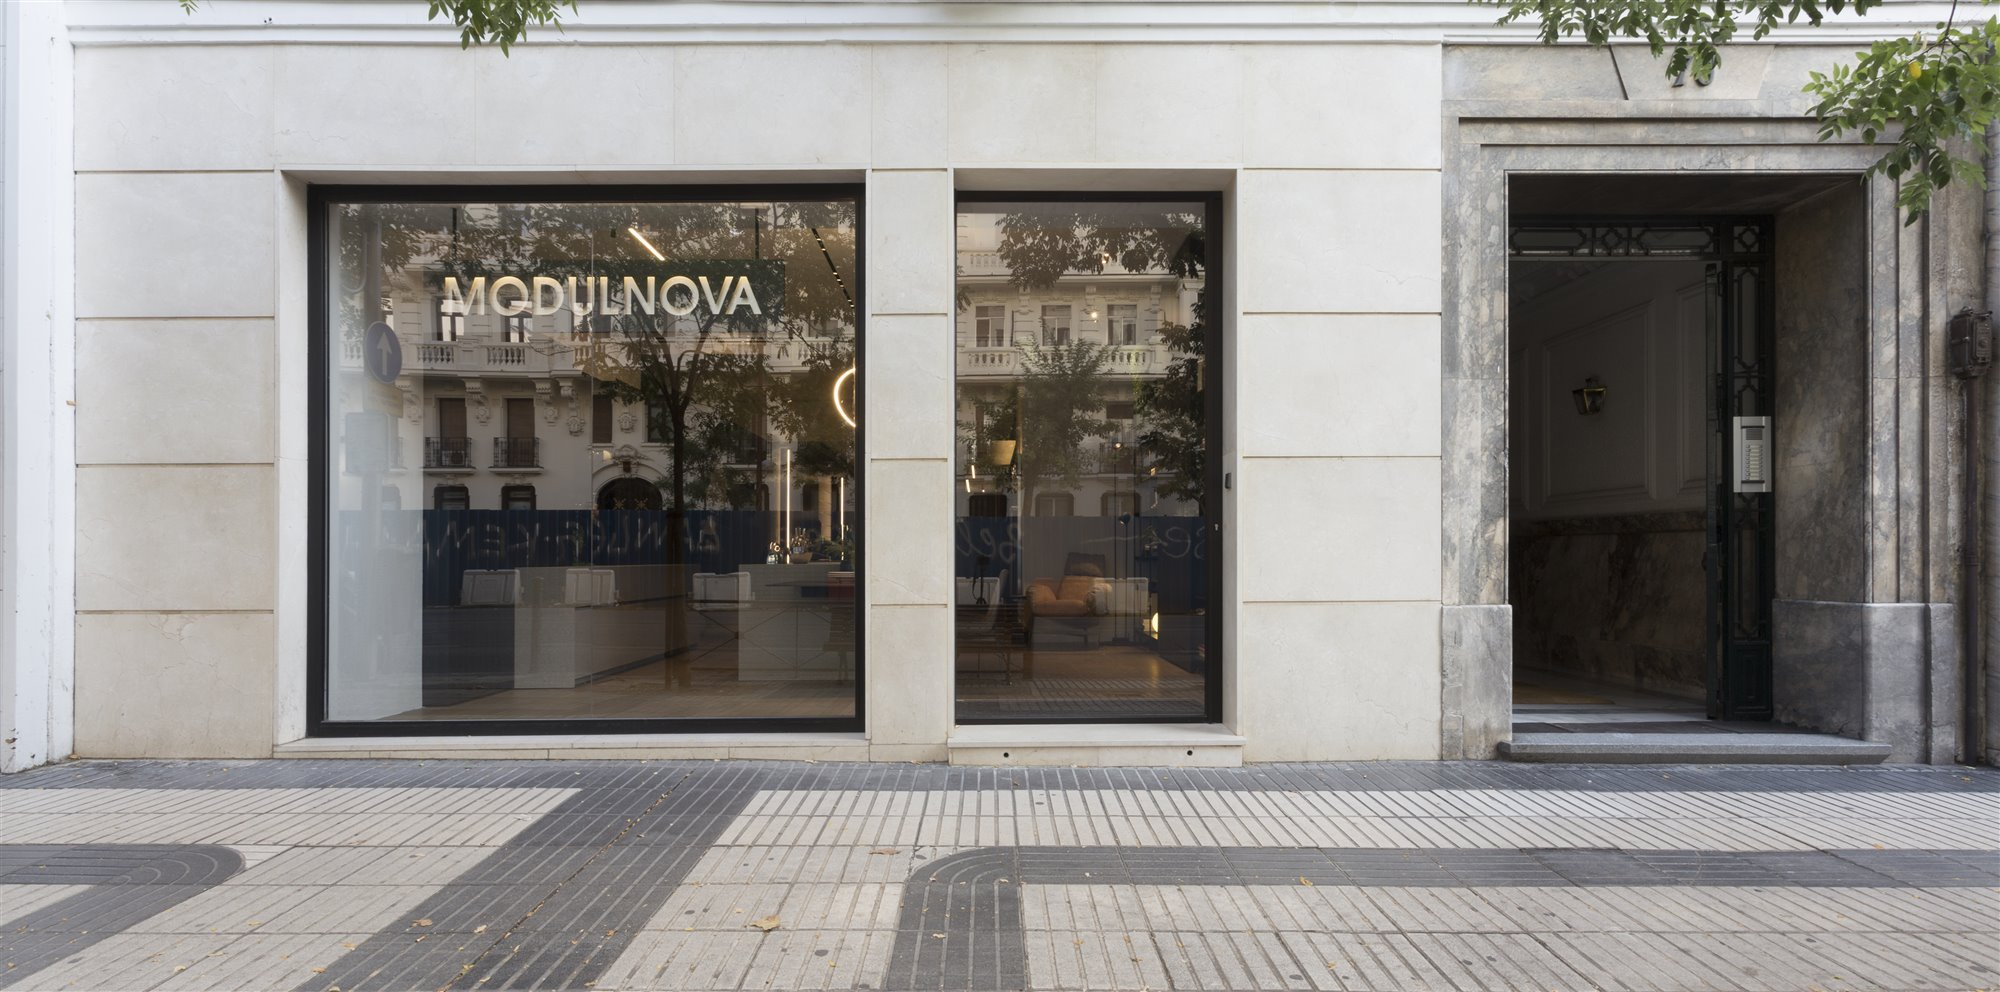 Escaparate MODULNOVA showroom en Madrid